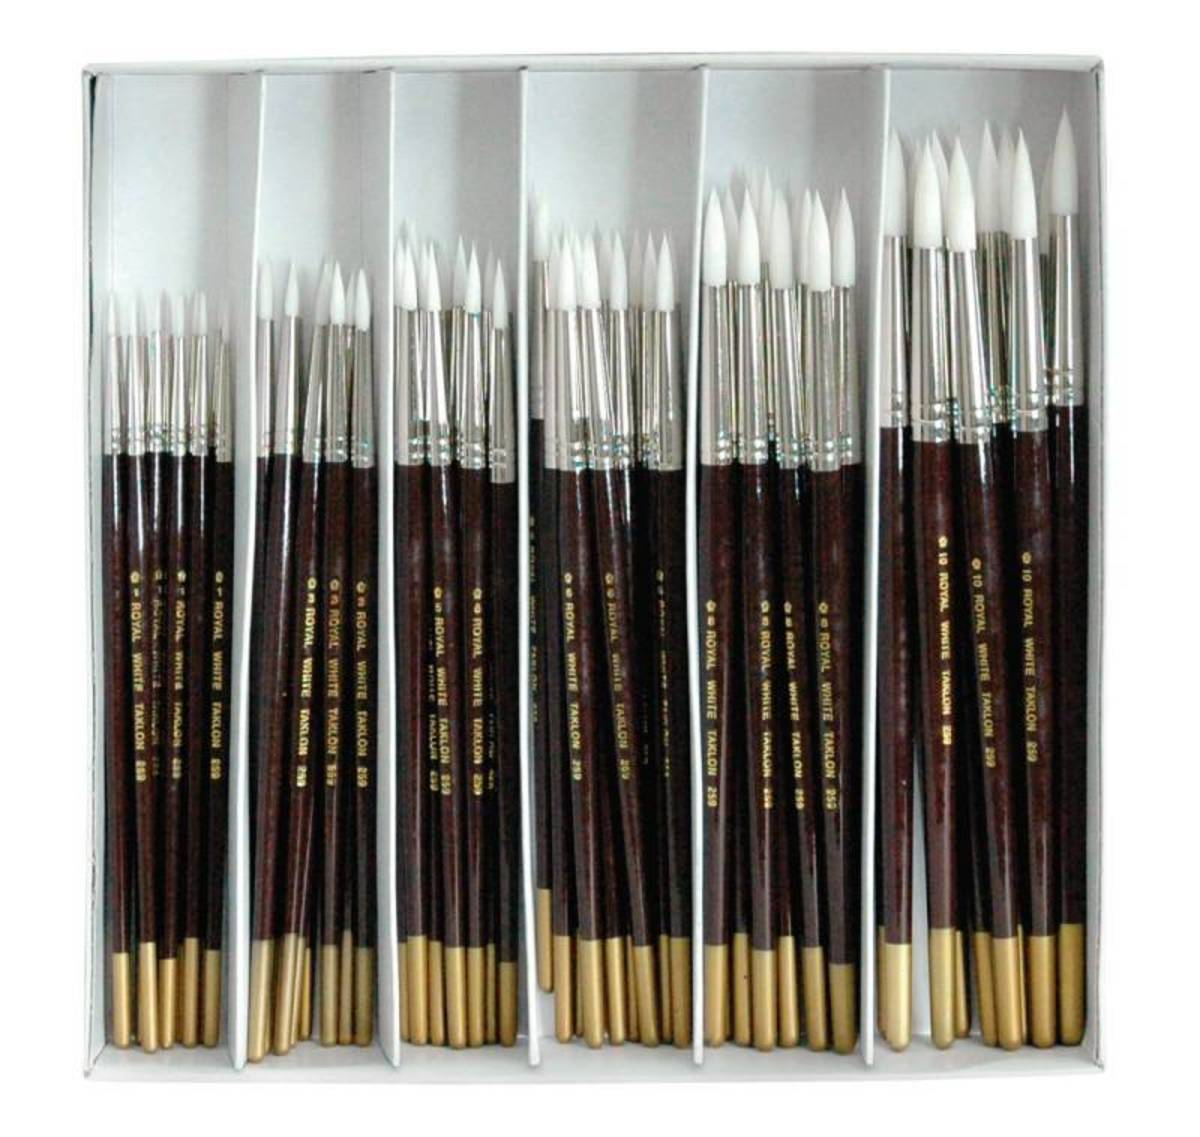 This type of brush works very well.